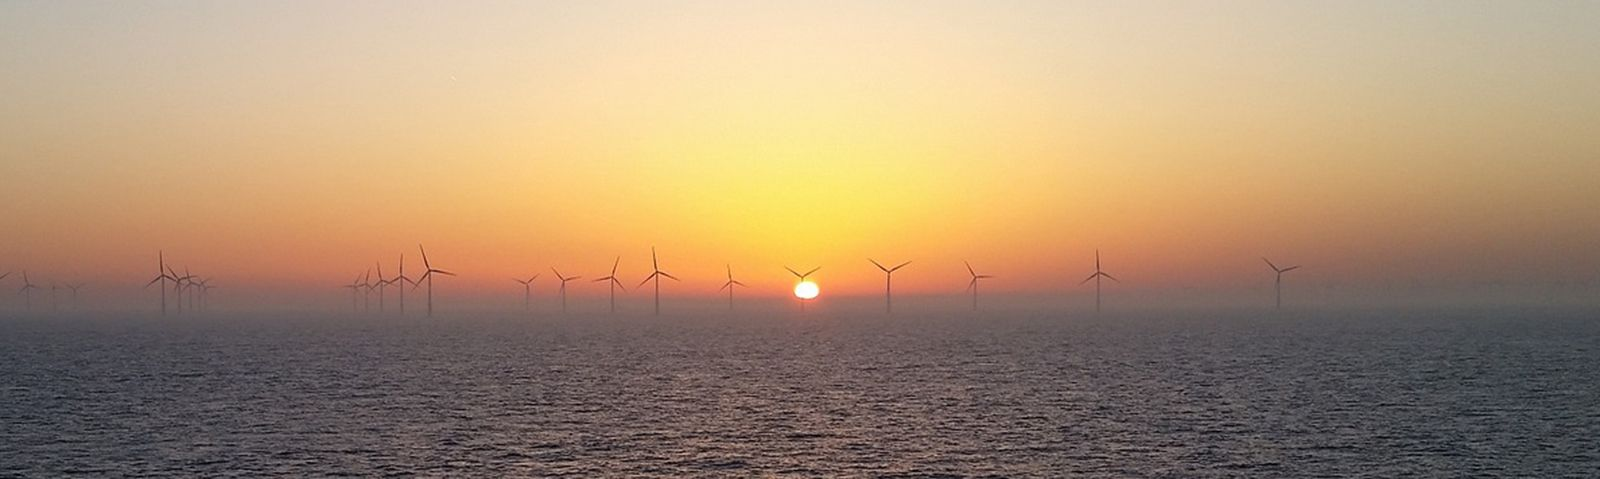 IPCC report to set agenda for action on climate and the ocean